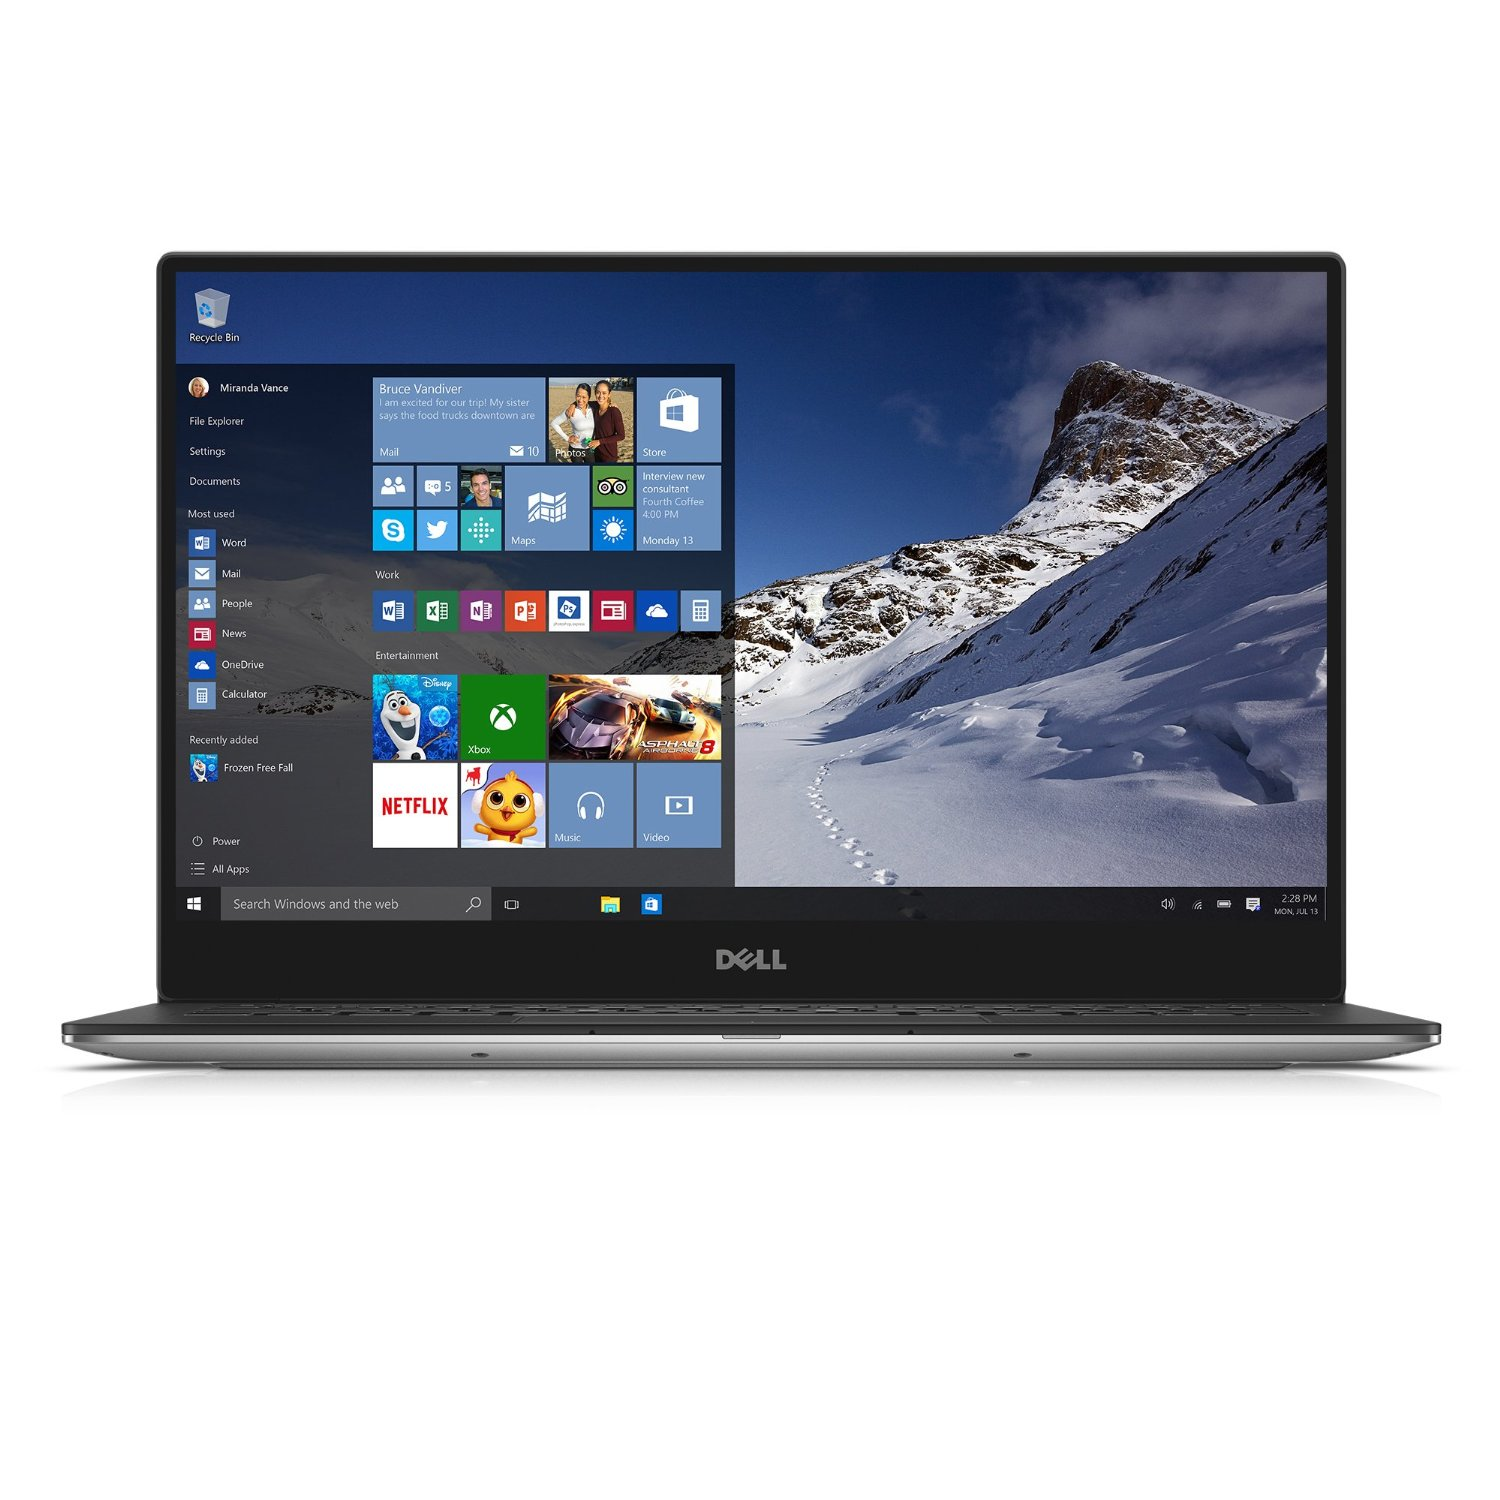 Dell XPS 13 XPS9343-8182SLV 13.3 inch Laptop